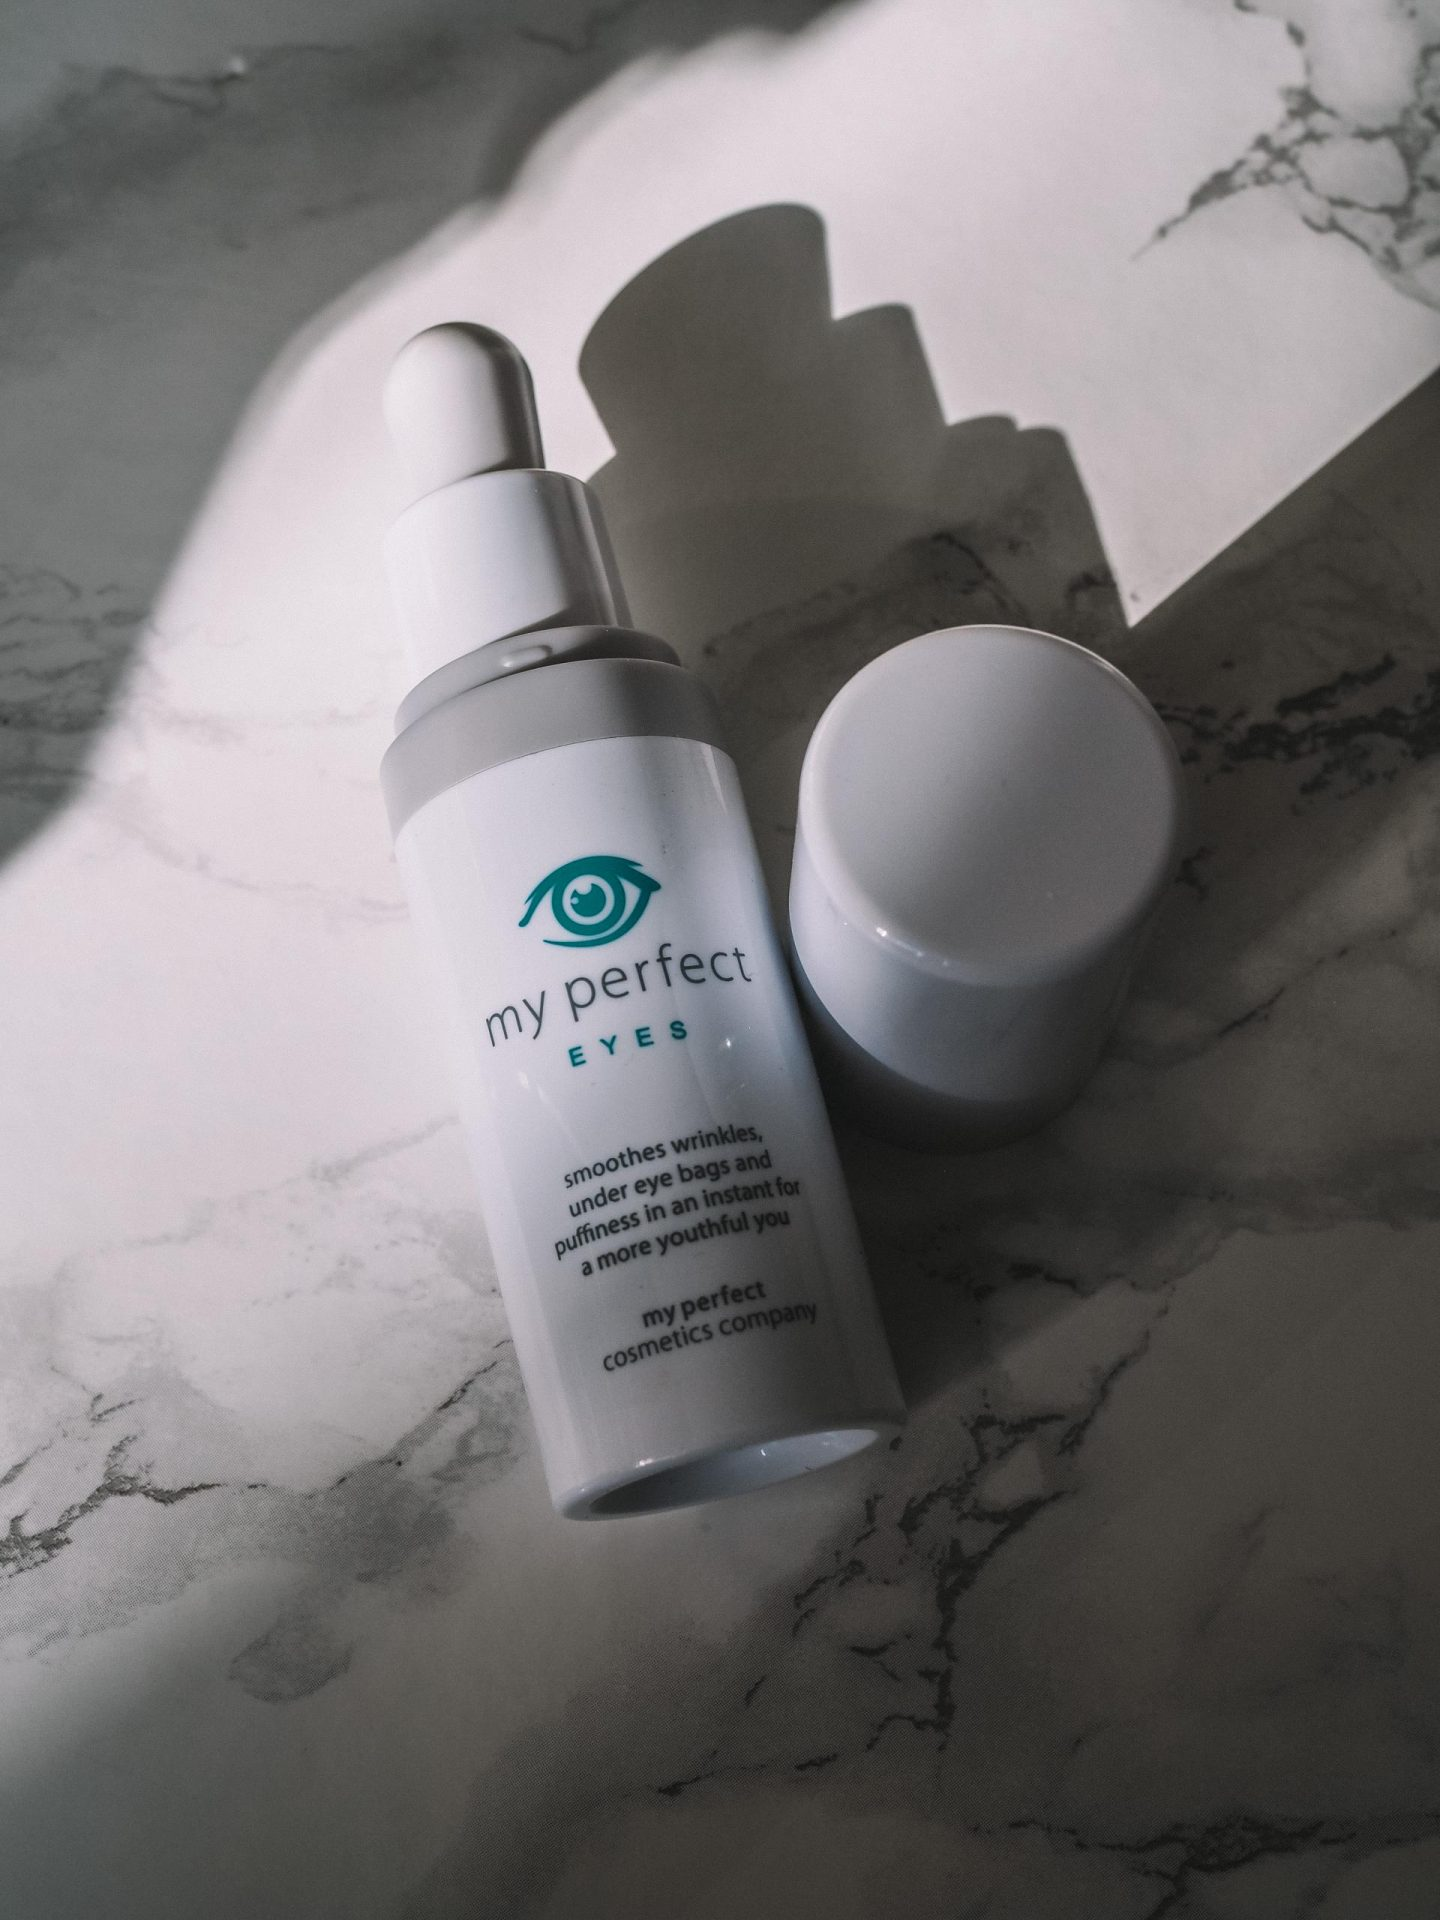 My Perfect Eyes review